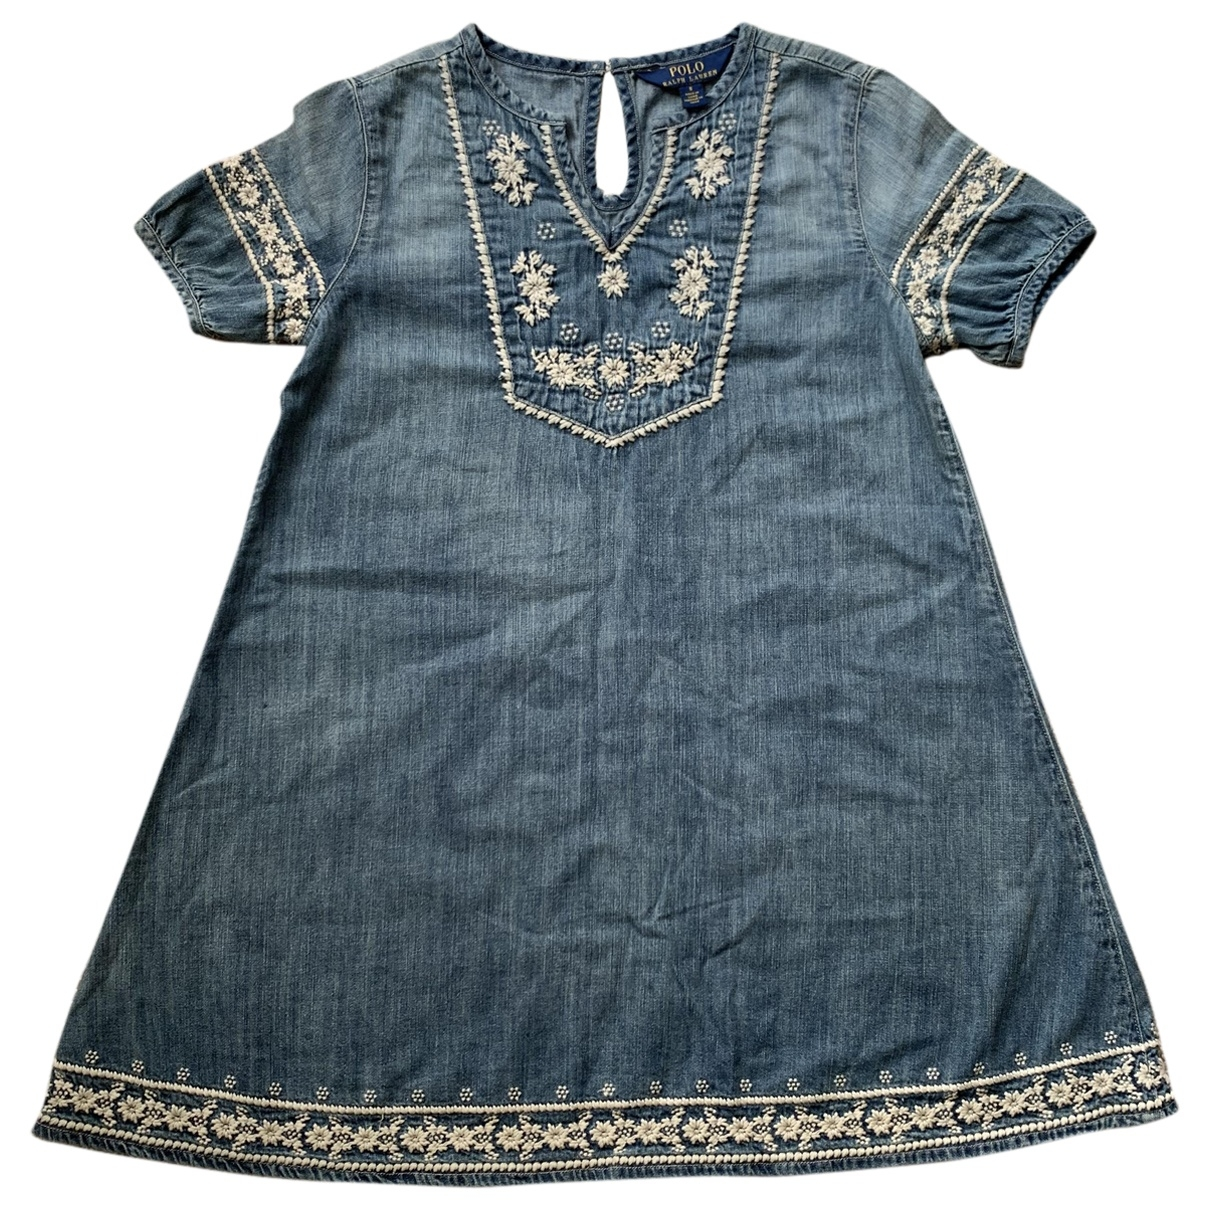 Polo Ralph Lauren \N Blue Cotton dress for Kids 8 years - until 50 inches UK